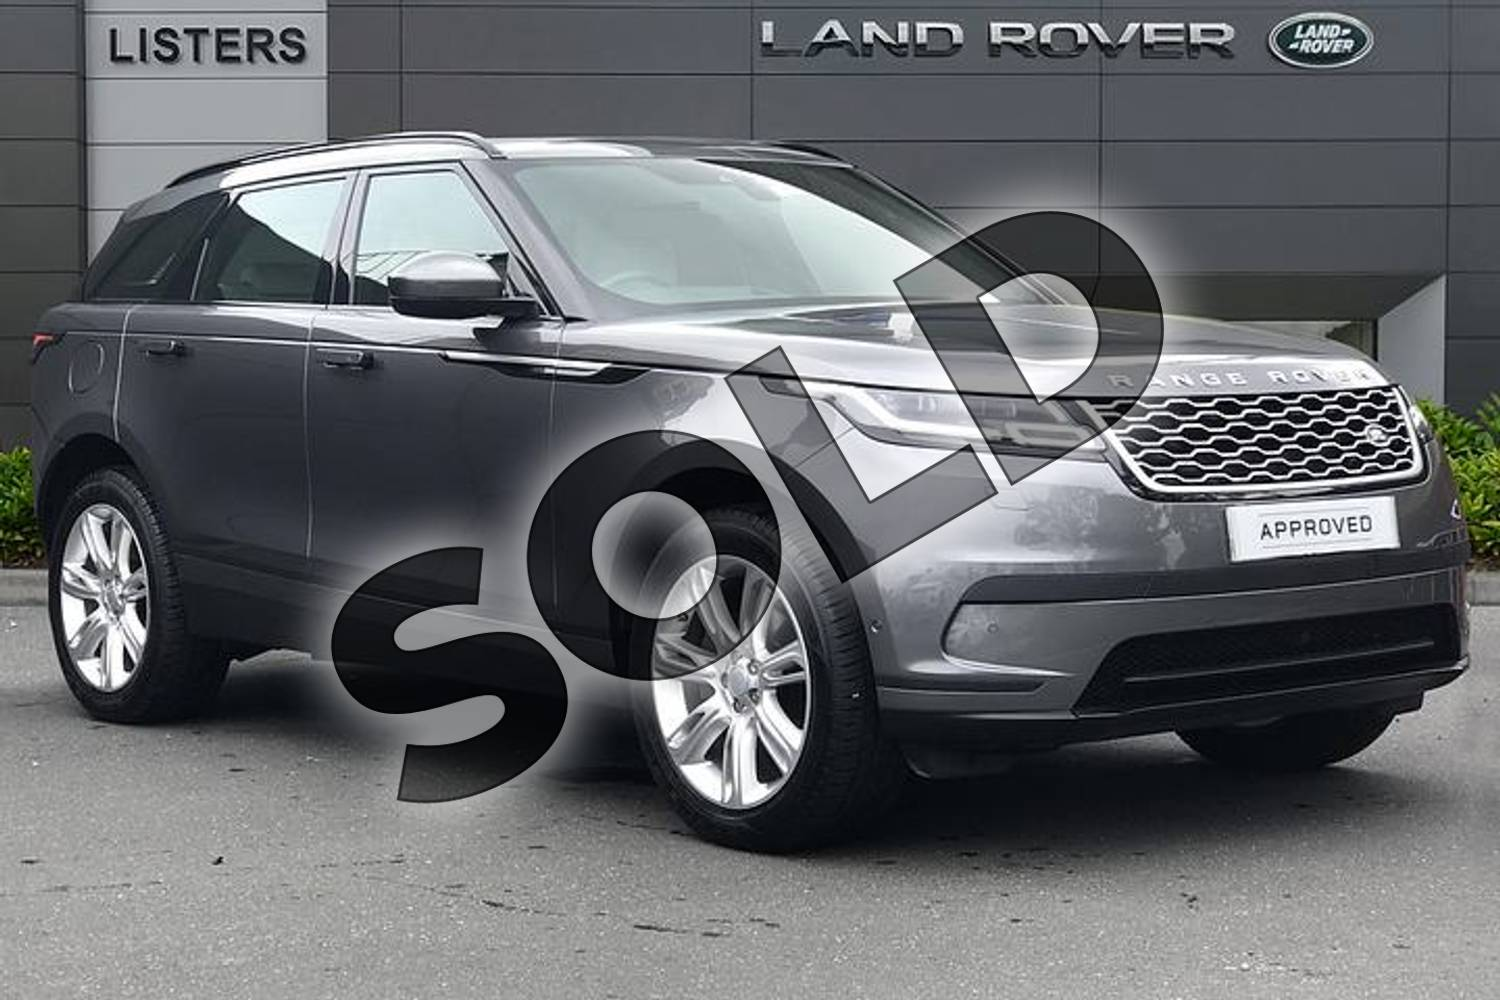 2019 Range Rover Velar Diesel Estate 2.0 D180 SE 5dr Auto in Corris Grey at Listers Land Rover Droitwich